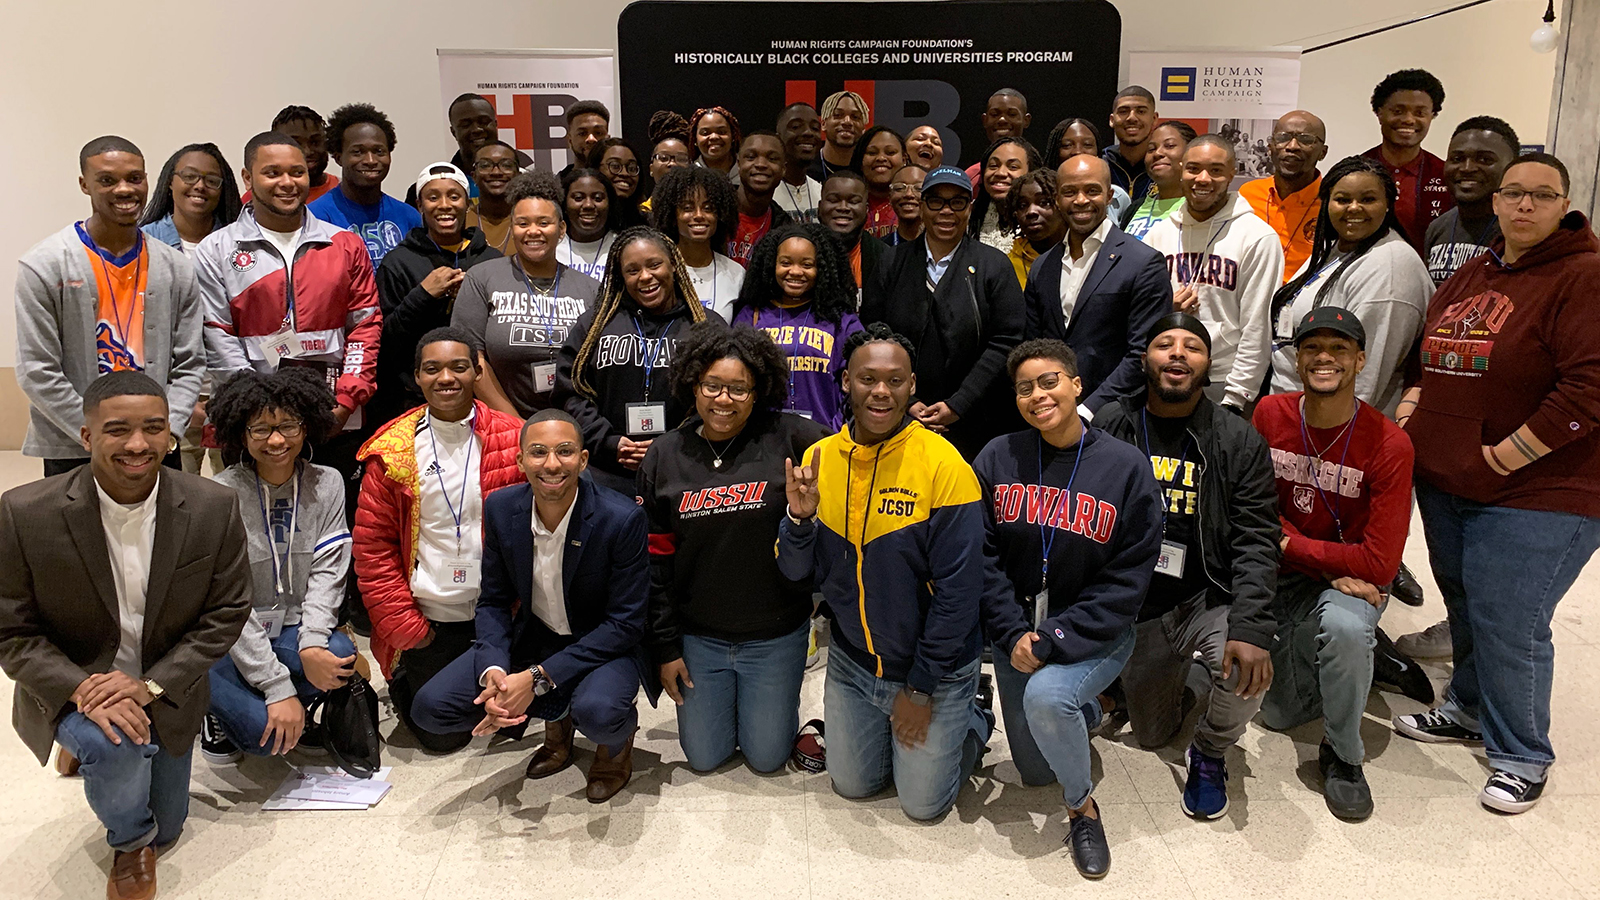 HRC Hosts Students from 33 Historically Black Colleges & Universities at Leadership Summit